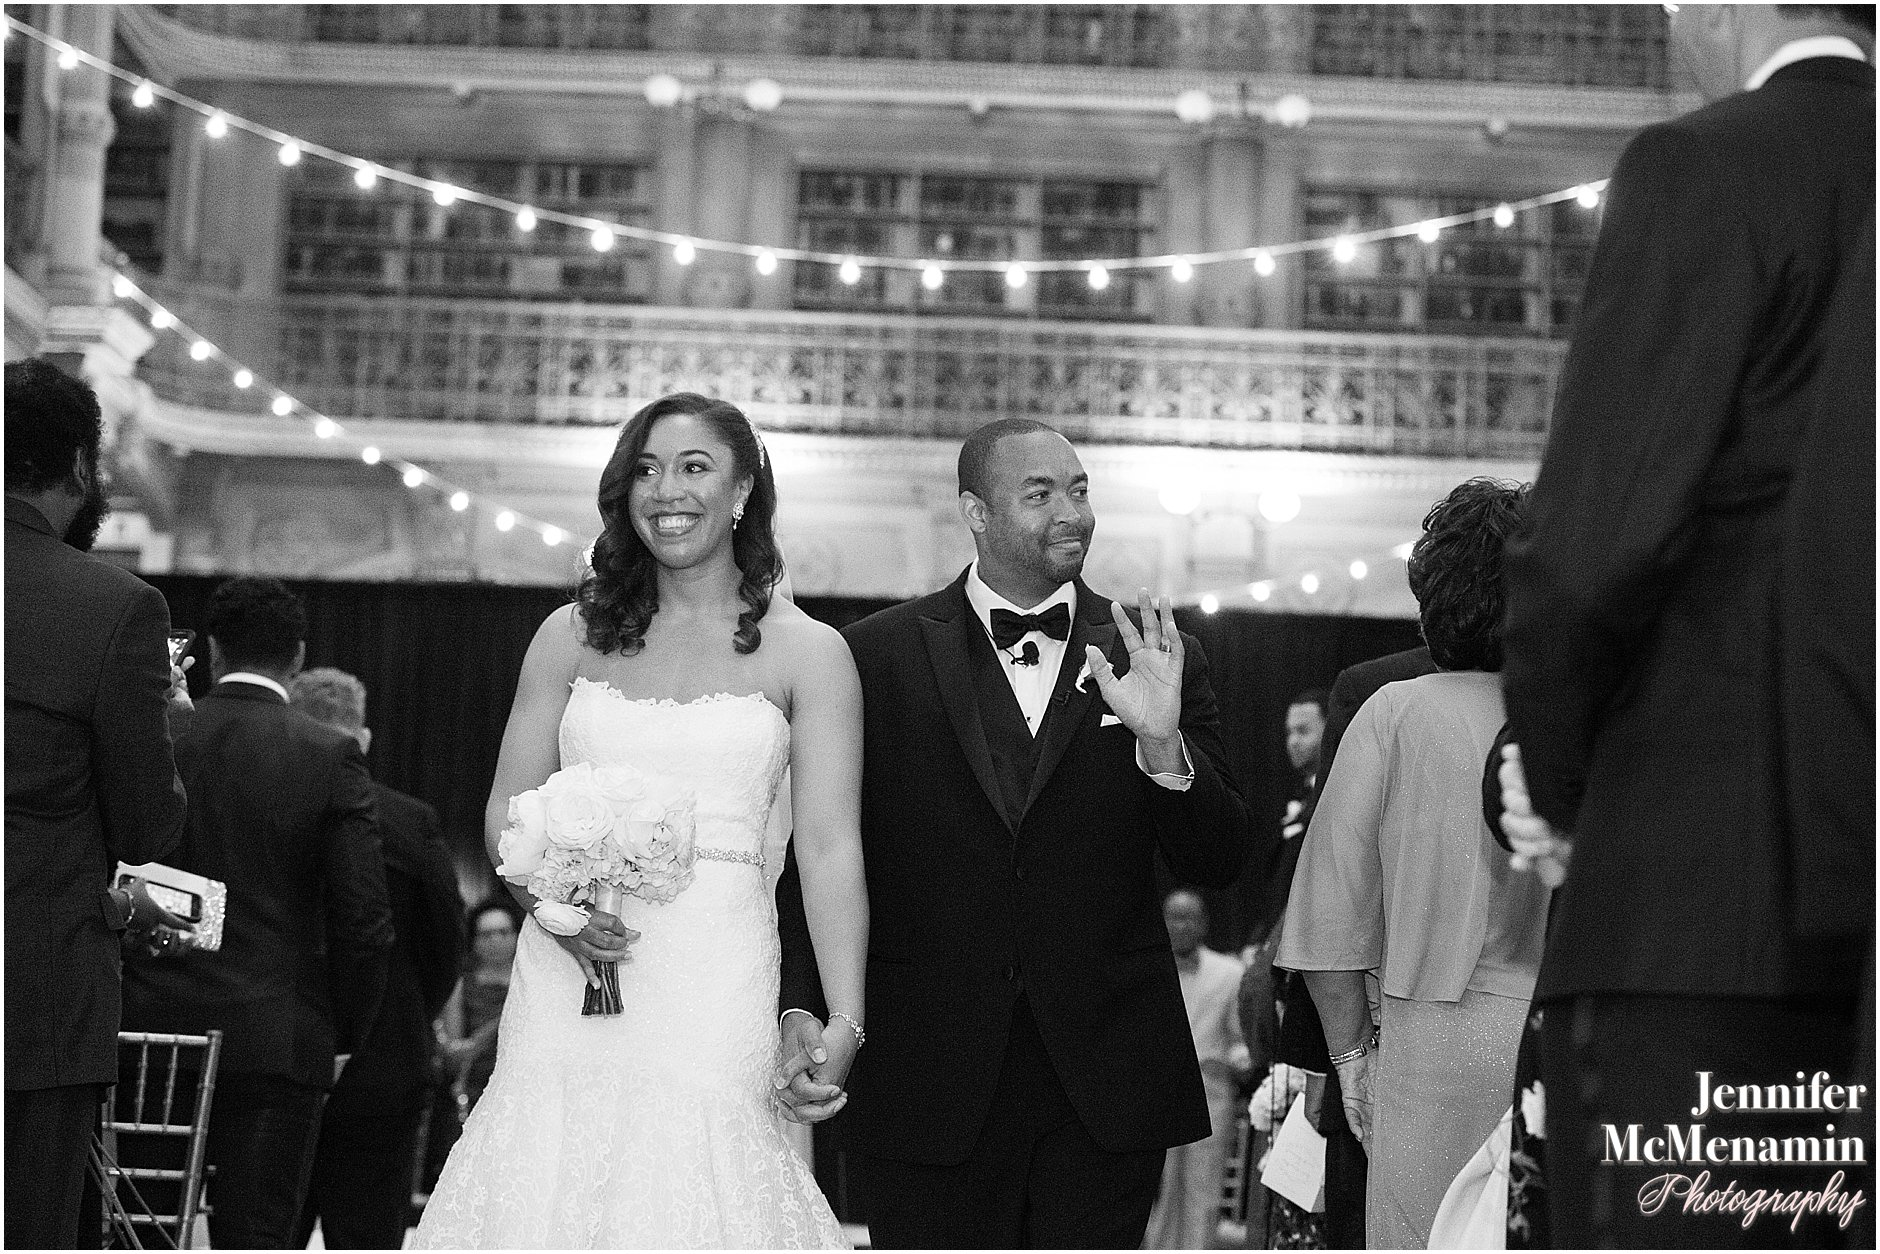 052-Peabody-Library-Wedding_WilsonPatterson_02028-0425_Jennifer-McMenamin-Photography